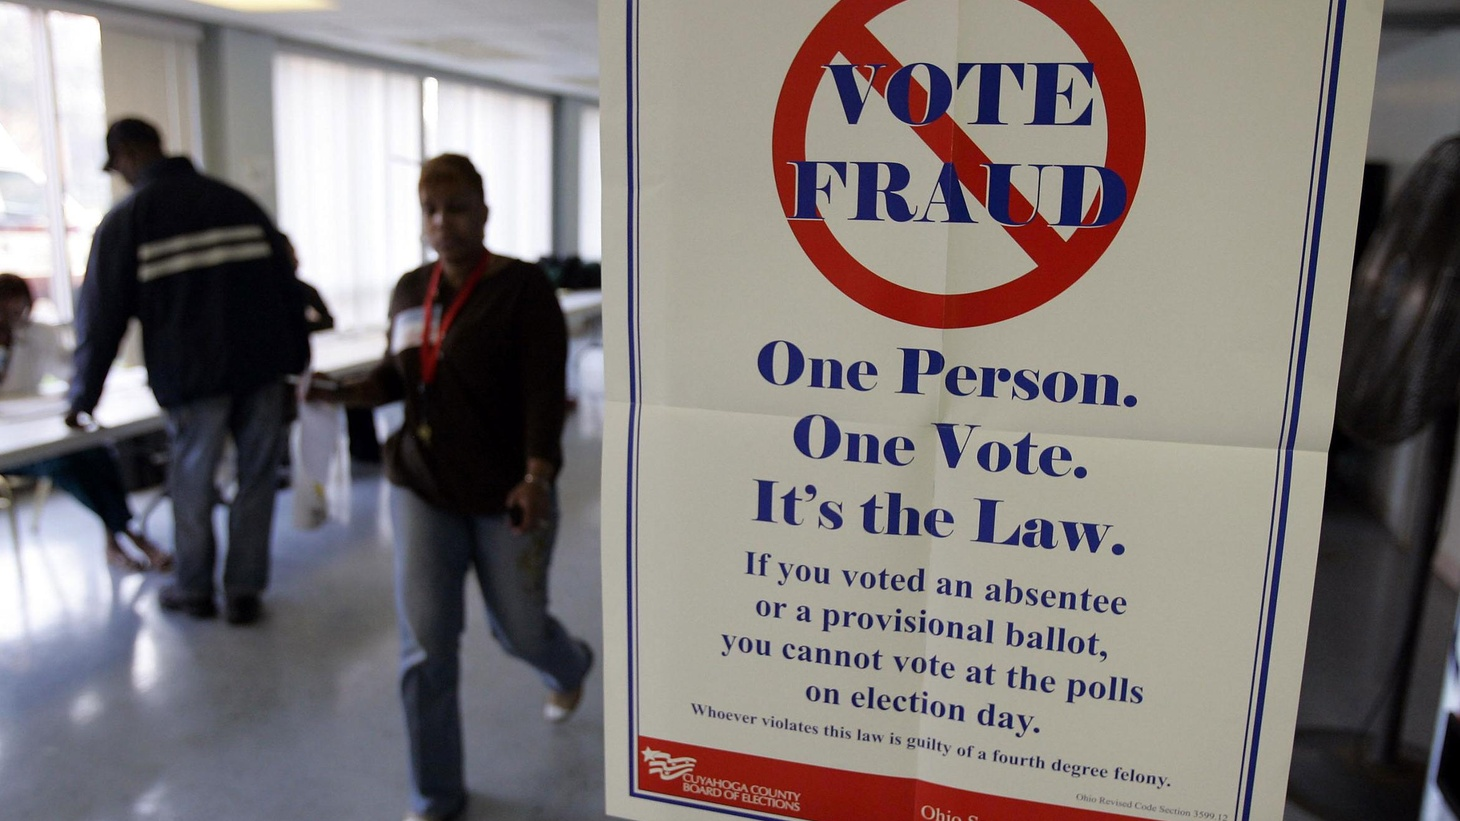 Is the GOP trying to stop voter fraud or keep Obama supporters away from the polls? Can Dem's prove minorities, old people and college students can't produce state-issued picture ID's?